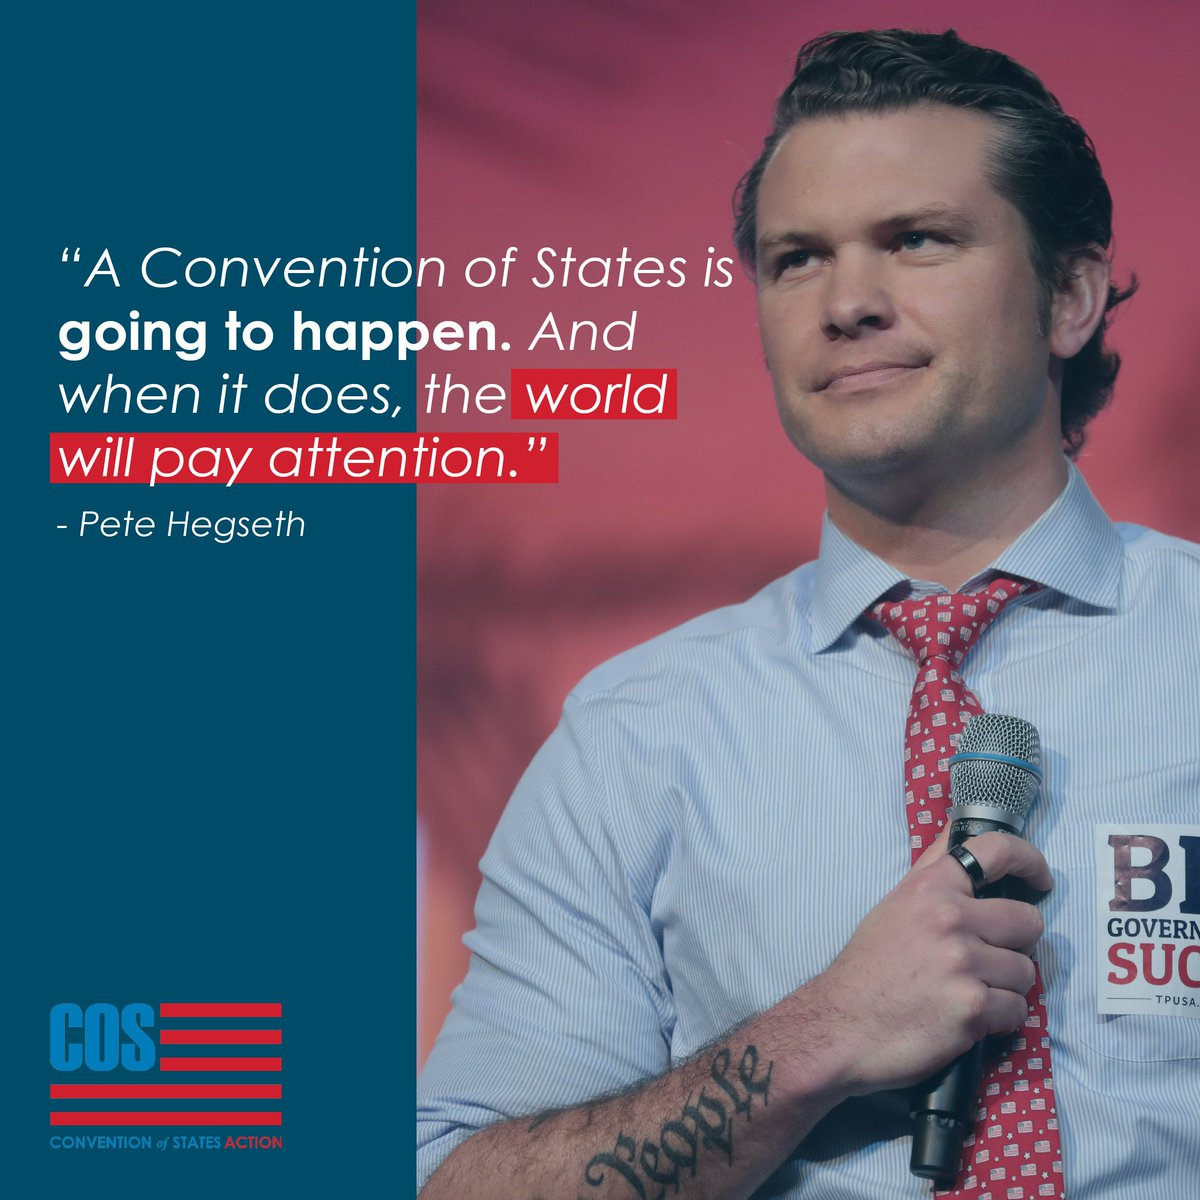 Are you ready to make history? Pete Hegseth is. Join us → conventionofstates.com/take_action @PeteHegseth